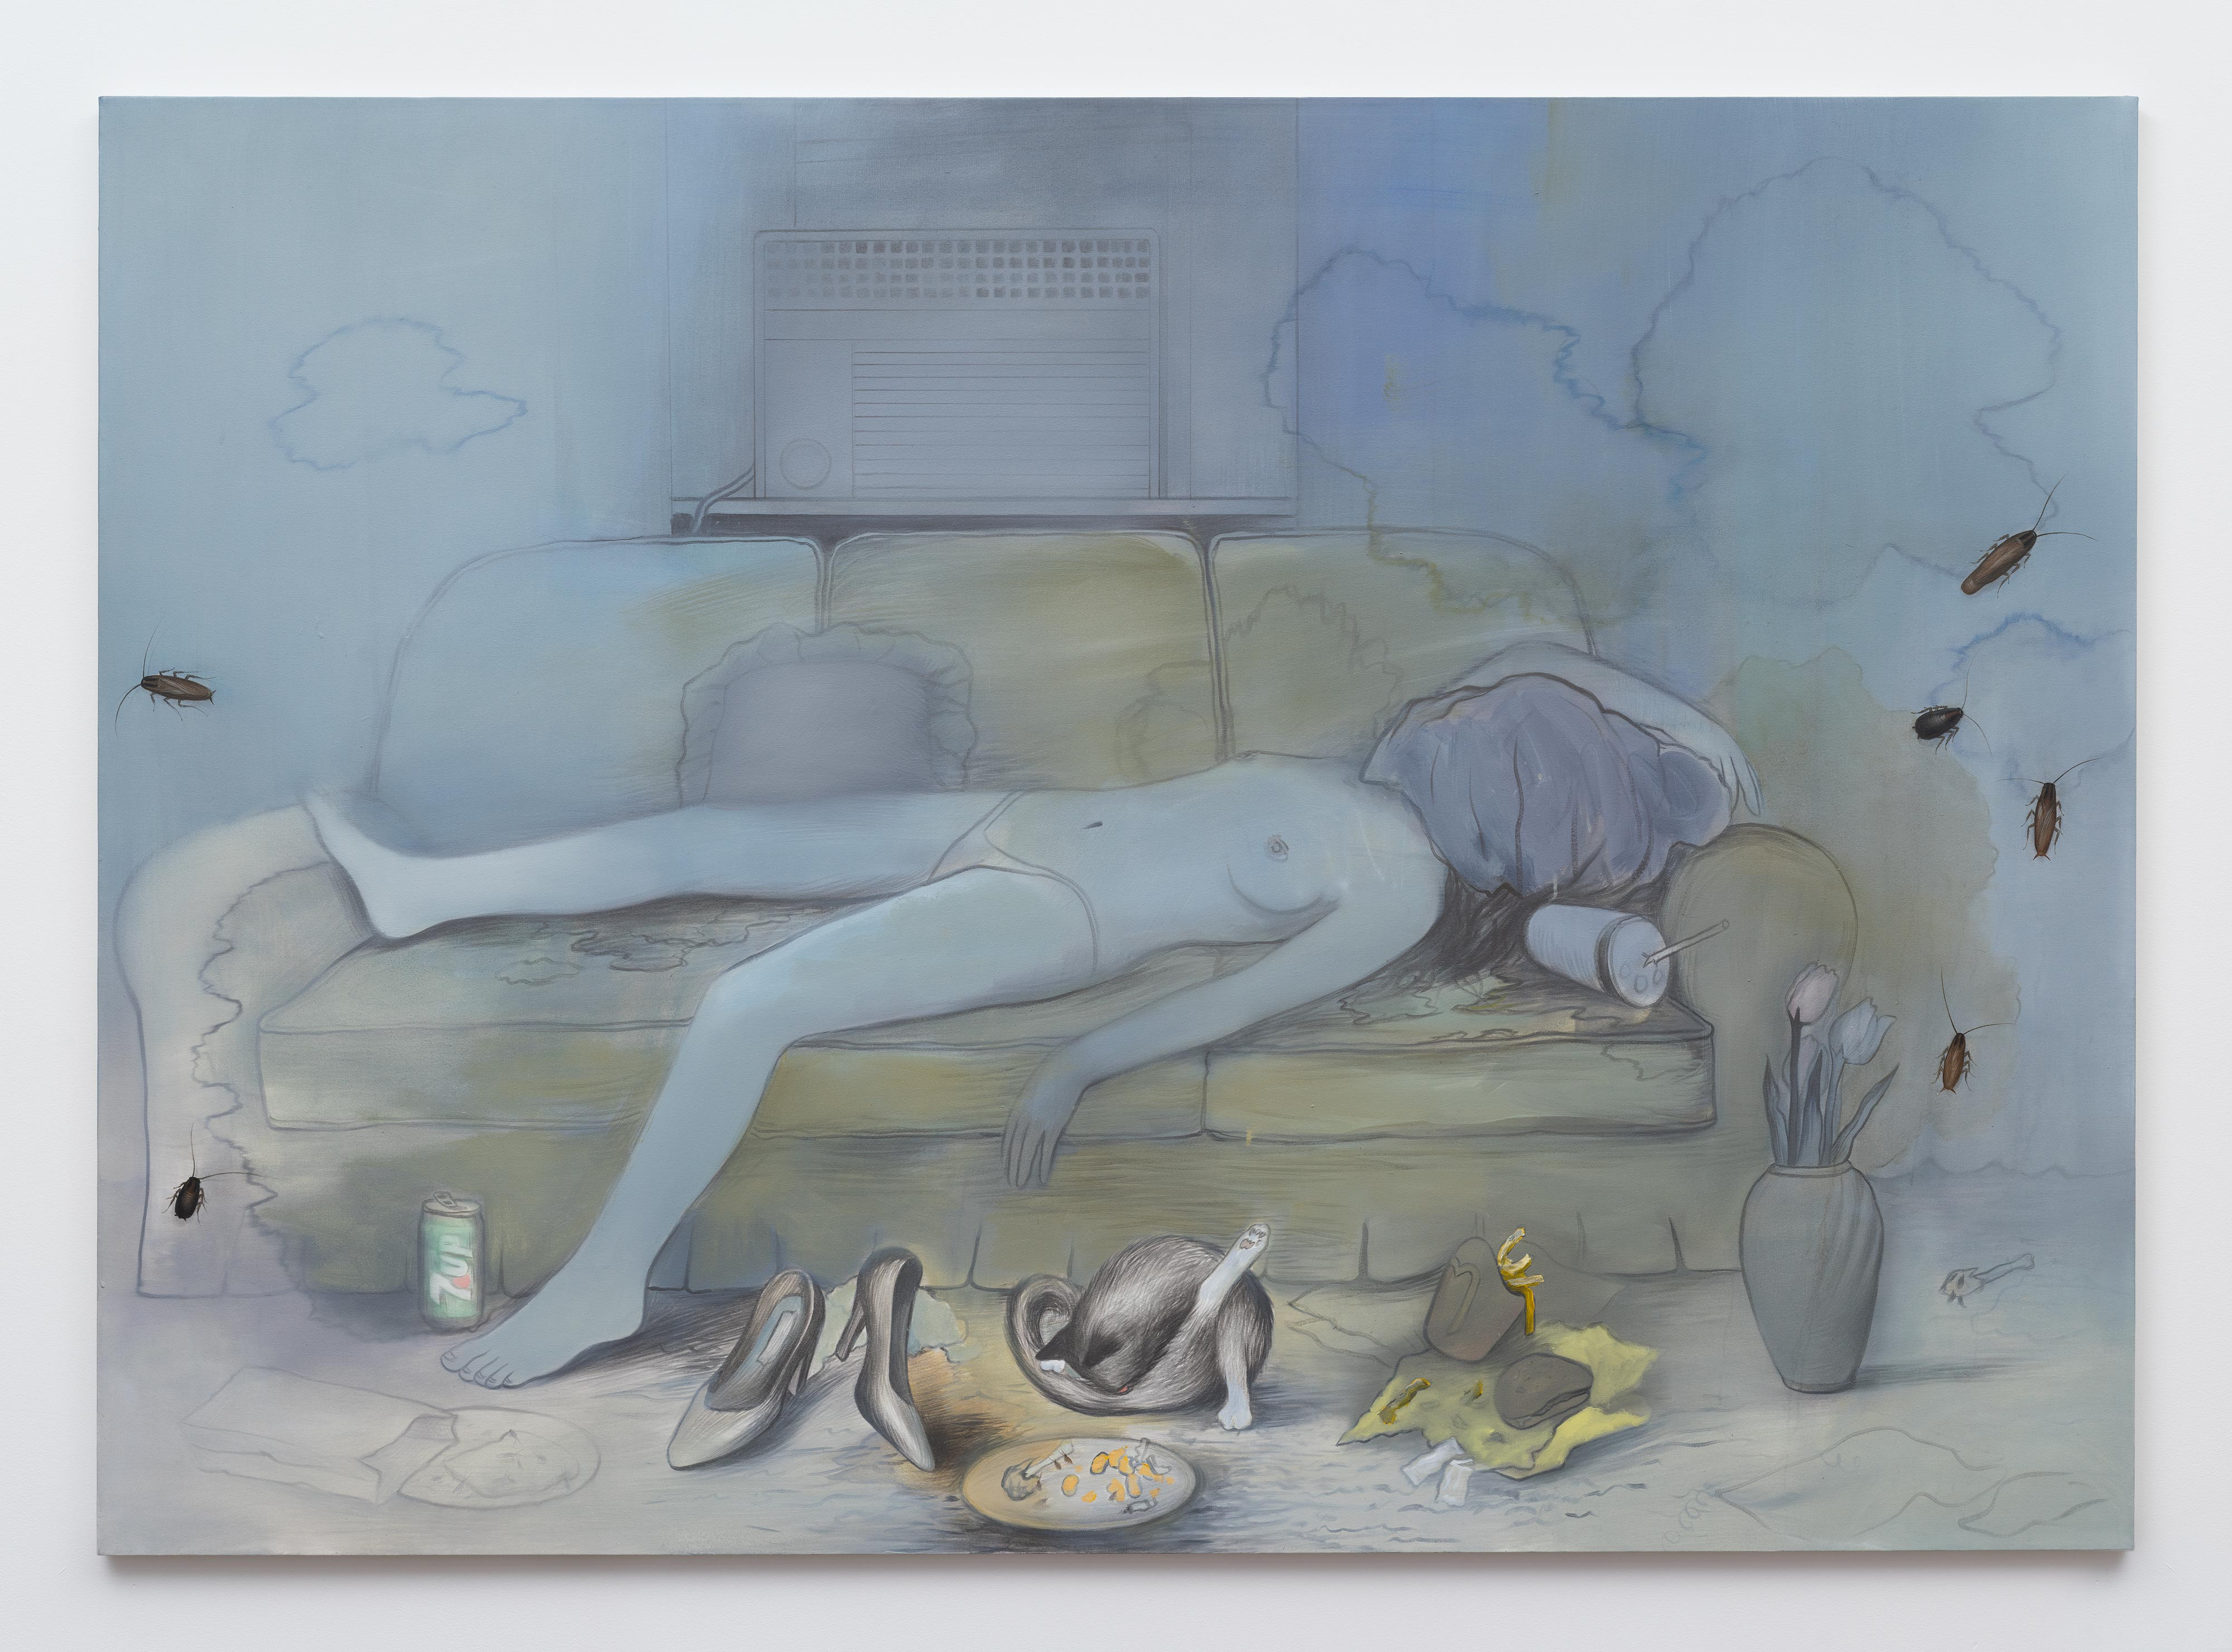 Brandi Twilley<br>Napping by the AC<br>2016<br>oil on canvas<br>60 x 84 in (152.4 x 172.72 cm)